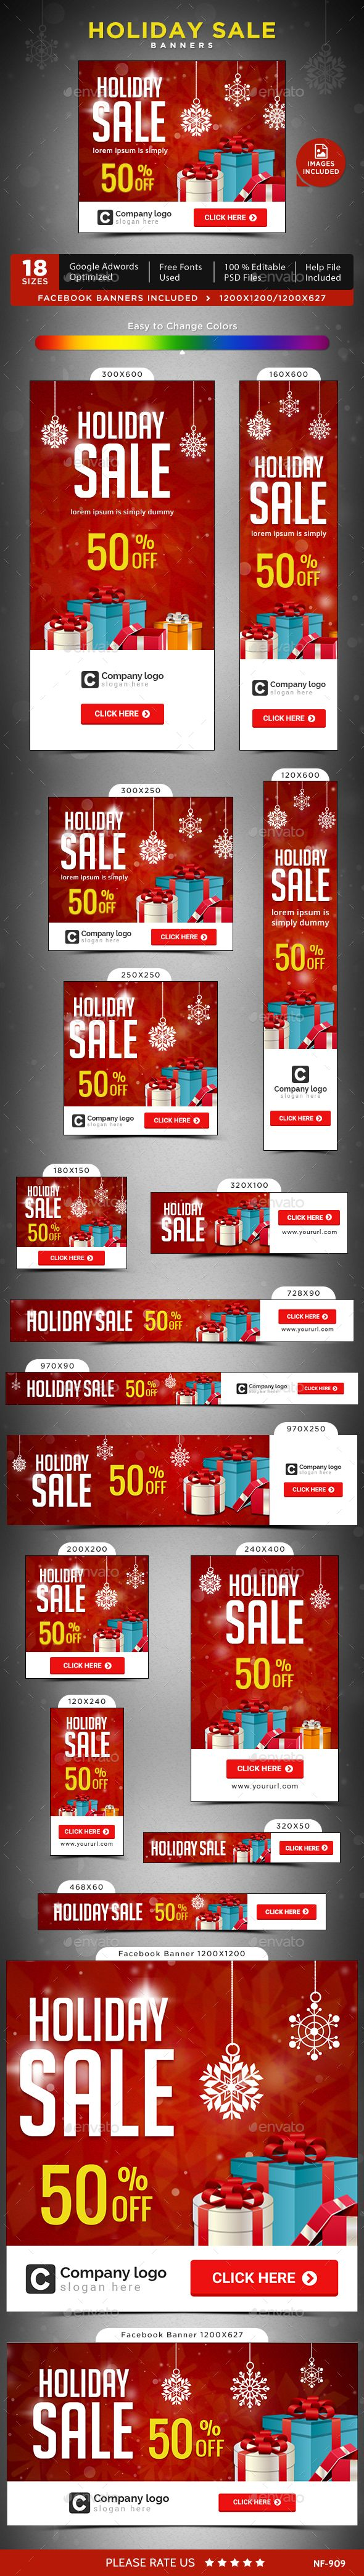 54 Best Christmas Web Banners Templates Images On Pinterest